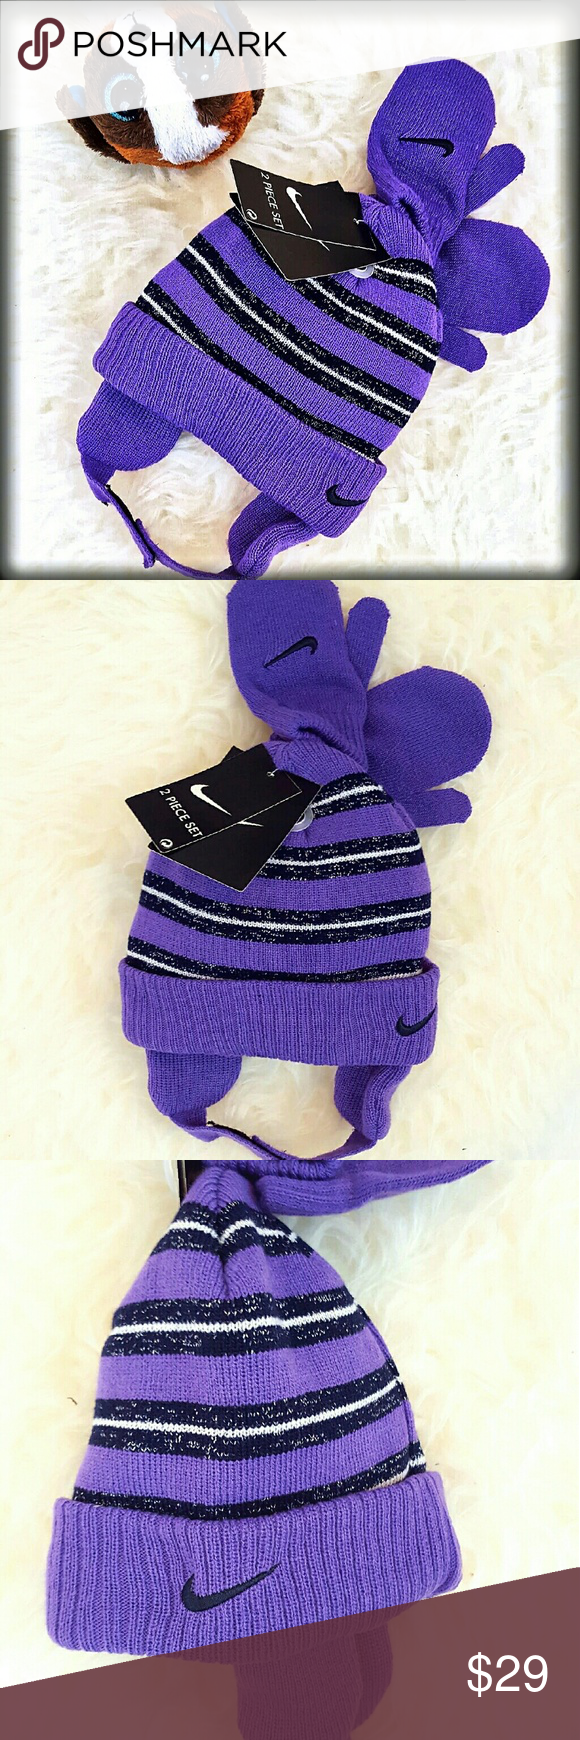 d5689c276c7 30% 2🚨NWT Nike Toddler Girl Winter Cap Gloves Set New with Tags simply  adorable Nike winter hat and stretch mittens set. Size 2t-4t. 100% Acrylic.